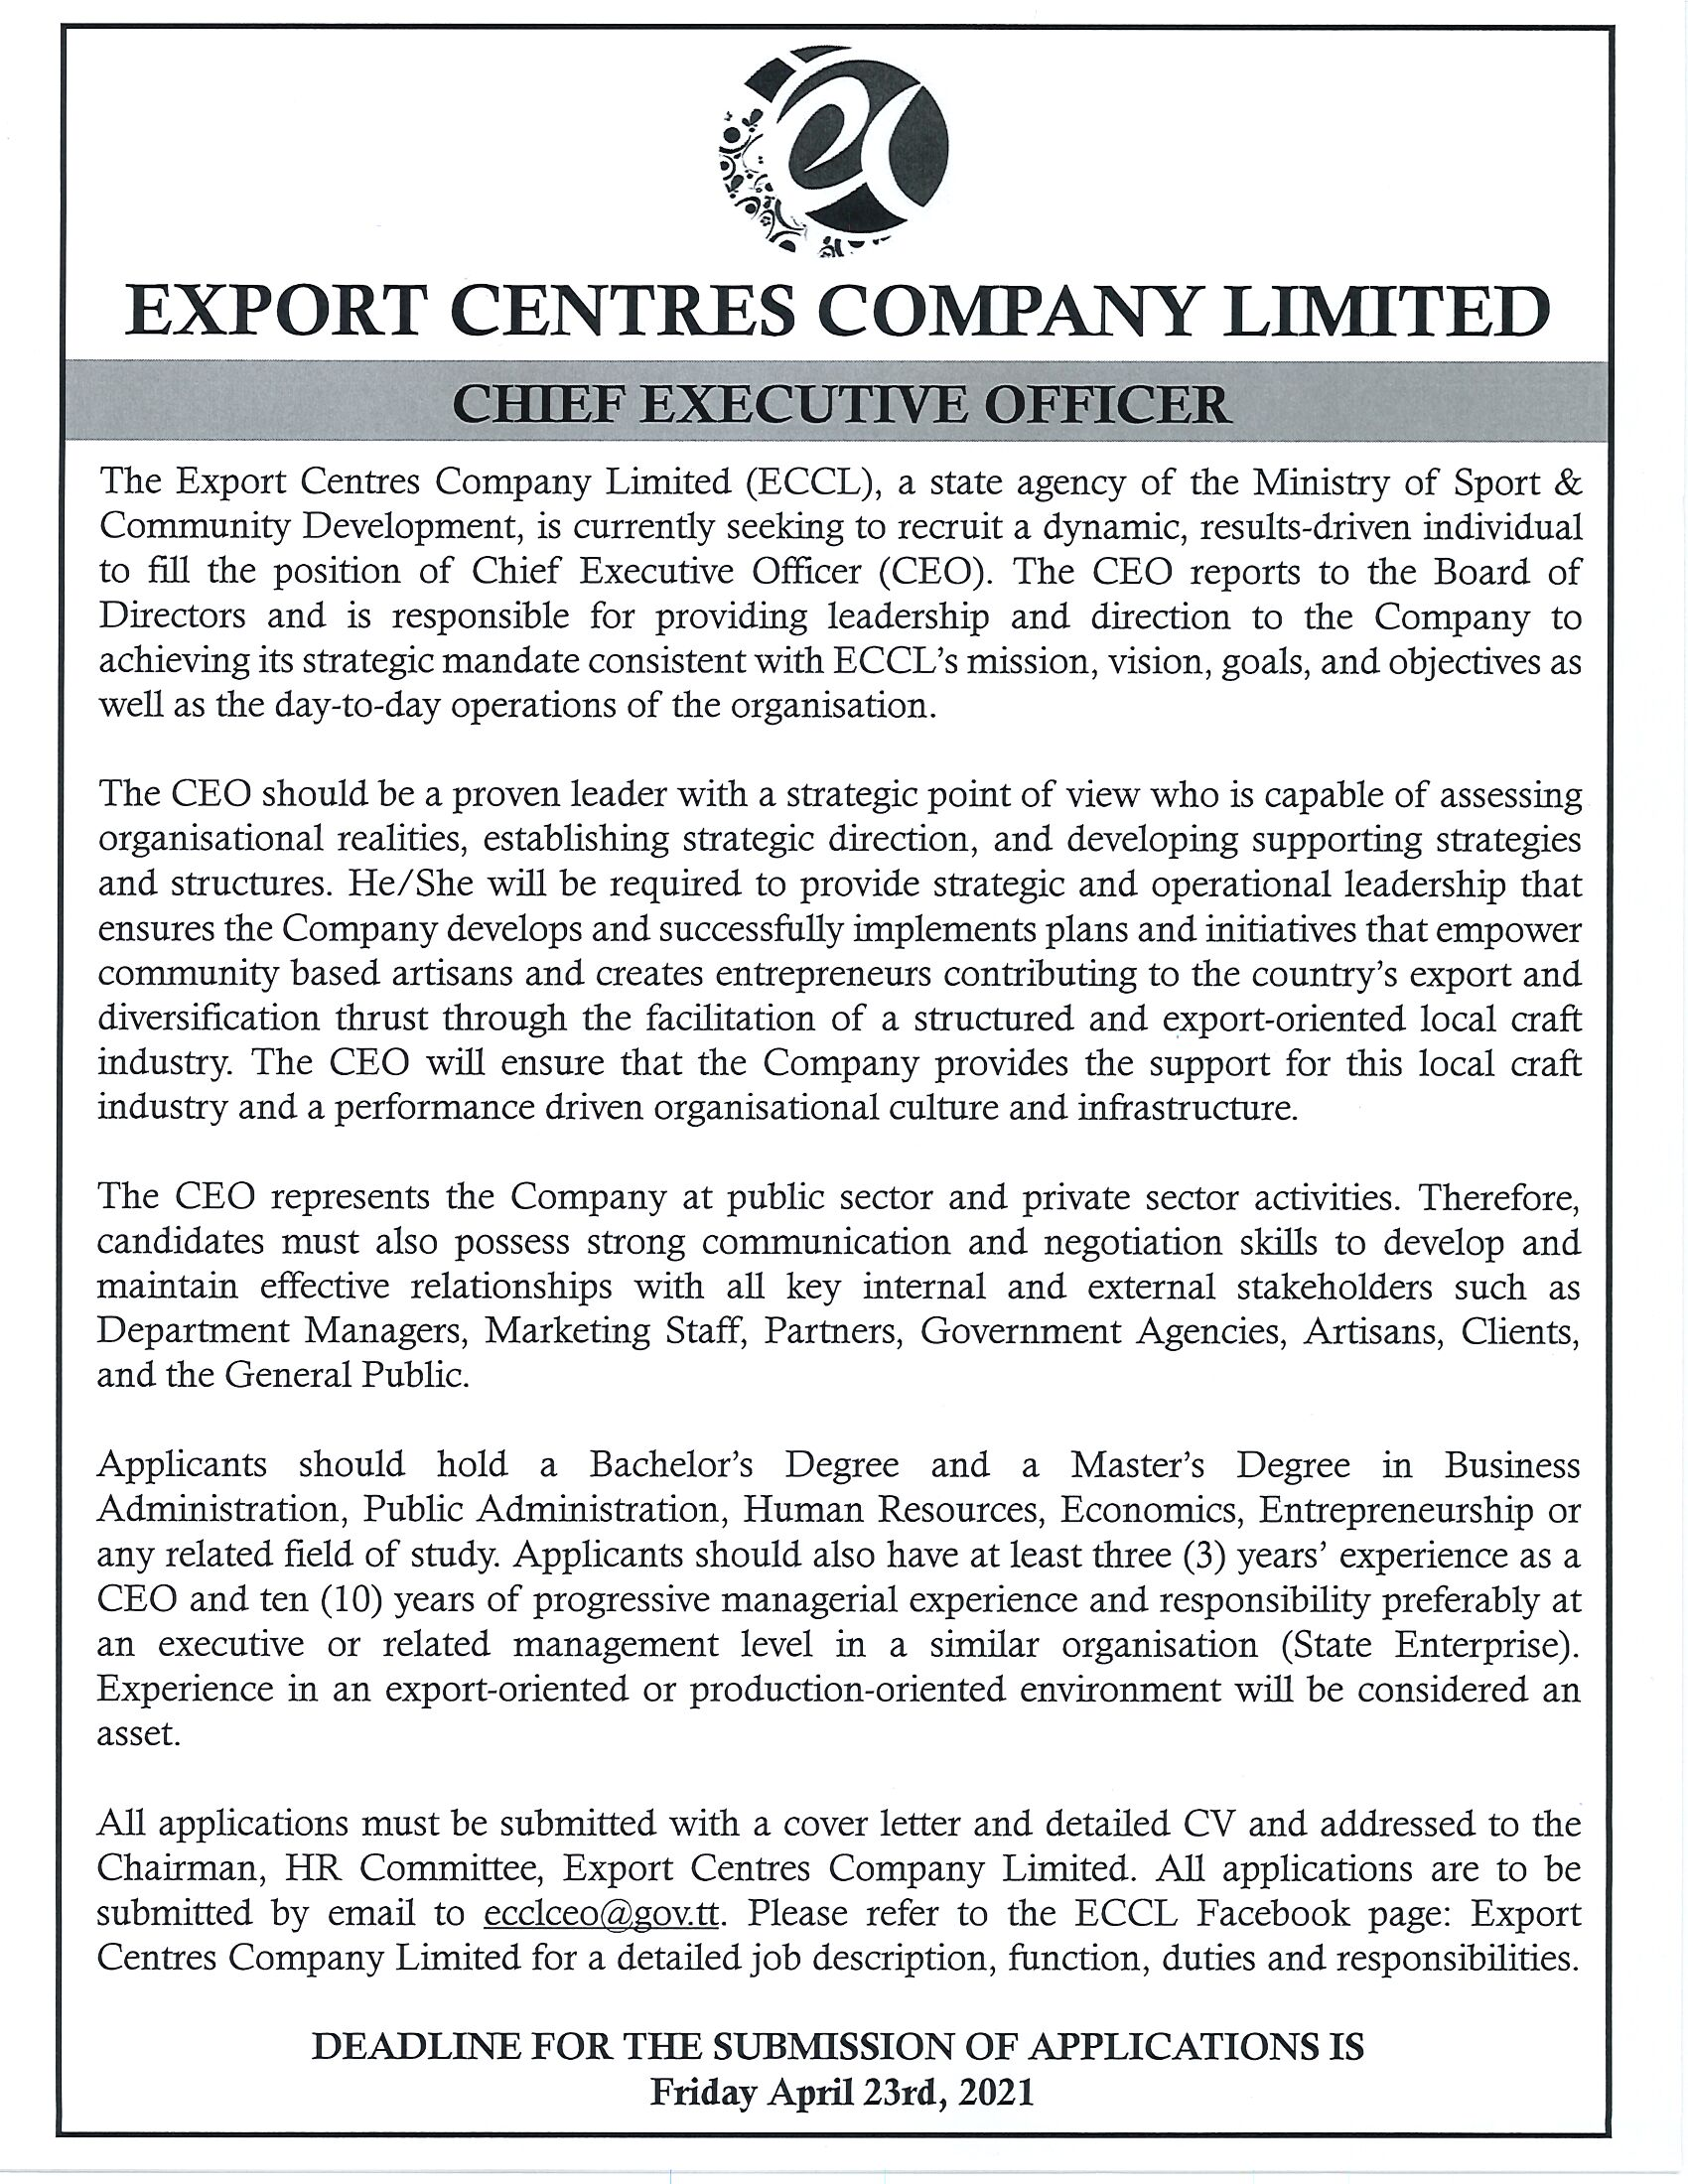 ECCL CEO JD cover letter